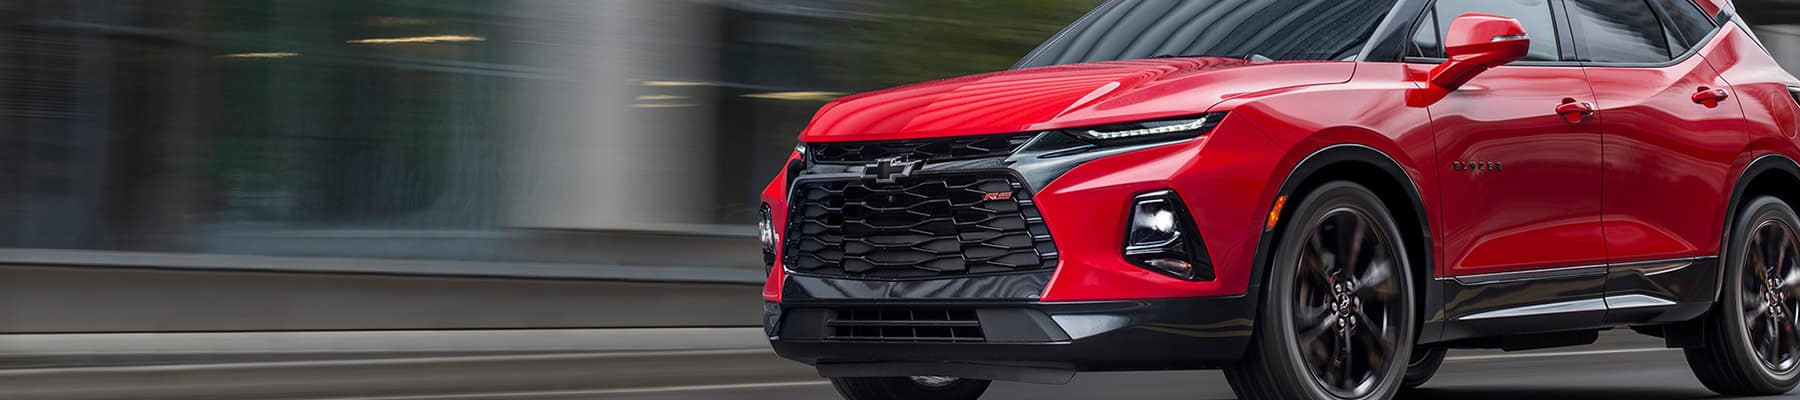 2019 Chevrolet Blazer in Red driving down the road